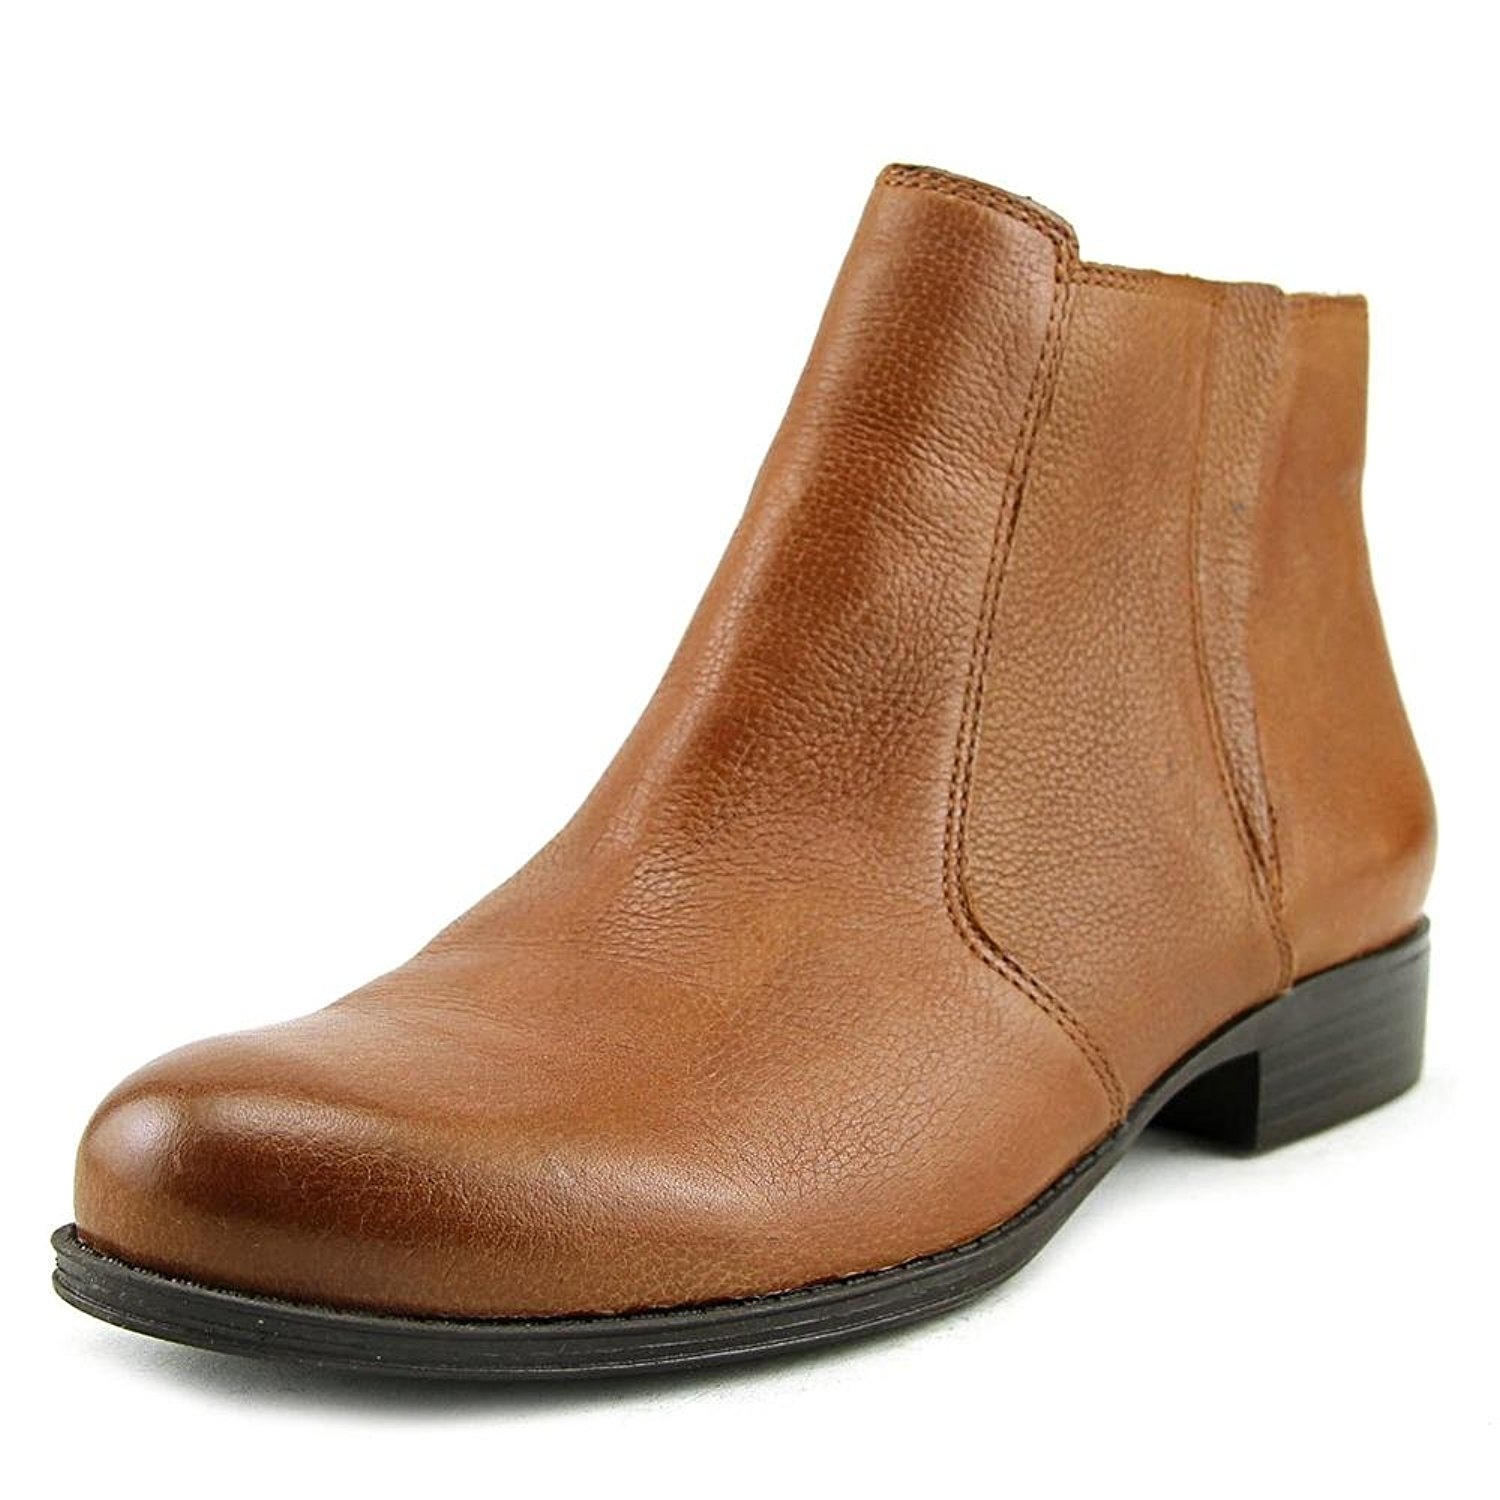 Naturalizer Womens Jump Leather Almond Toe Ankle Fashion Boots